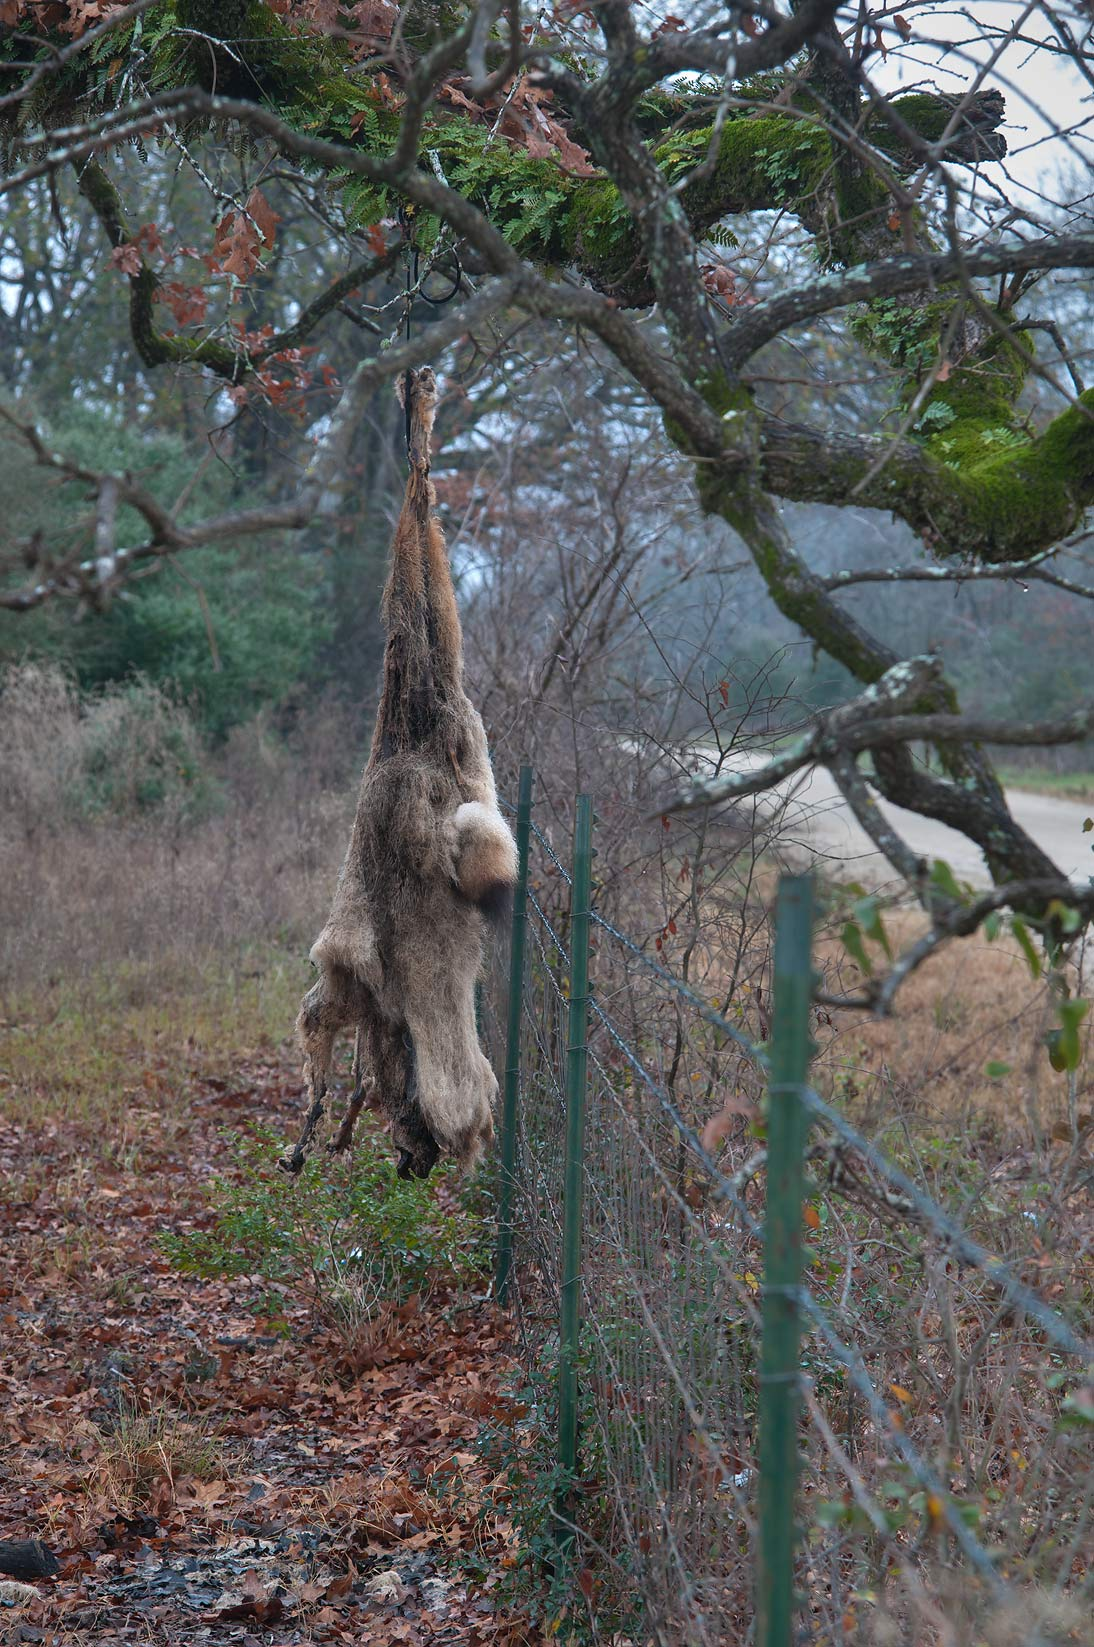 Animal hanging from oak tree at County Rd. 101 east from Bryan. Texas